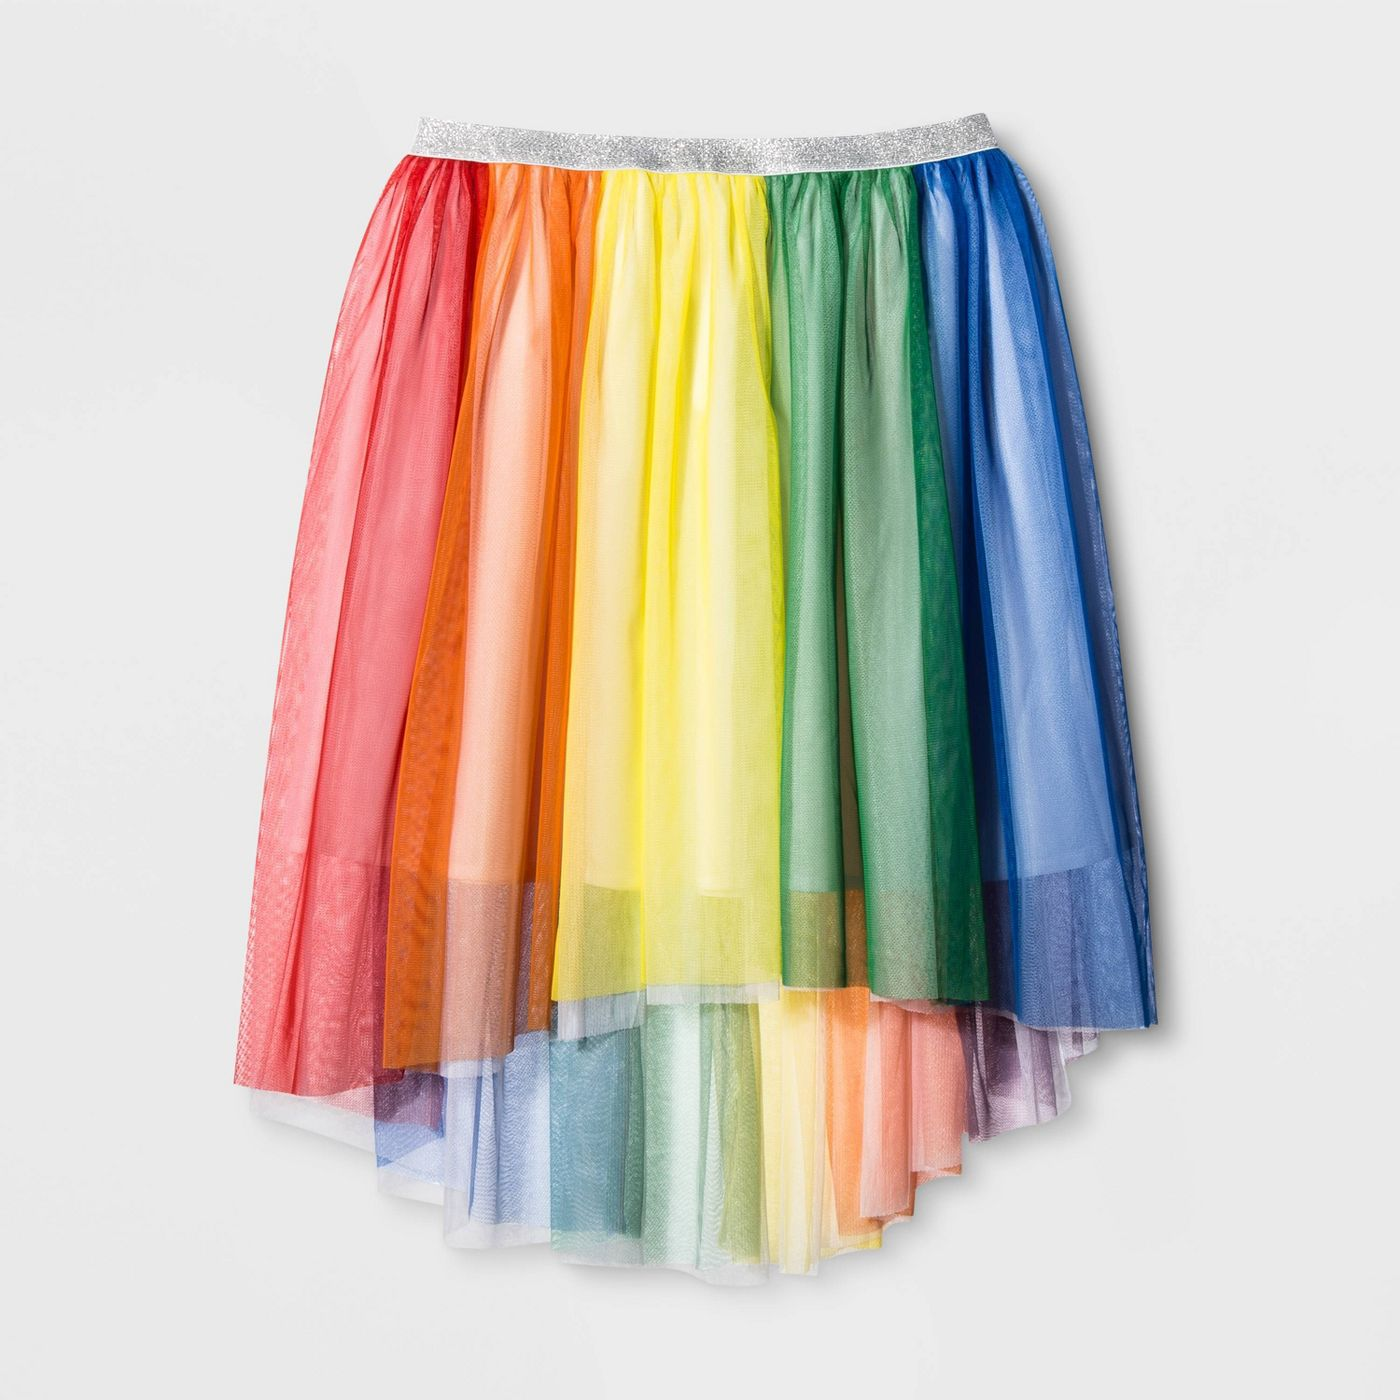 Target for the win.{ } Cute and affordable goodies for Pride.{ } Starting with this Pride Adult Gender Inclusive Skirt for only $18.{ } Very Rainbow Bright and we are here for it.{ }(Image: Target){ }